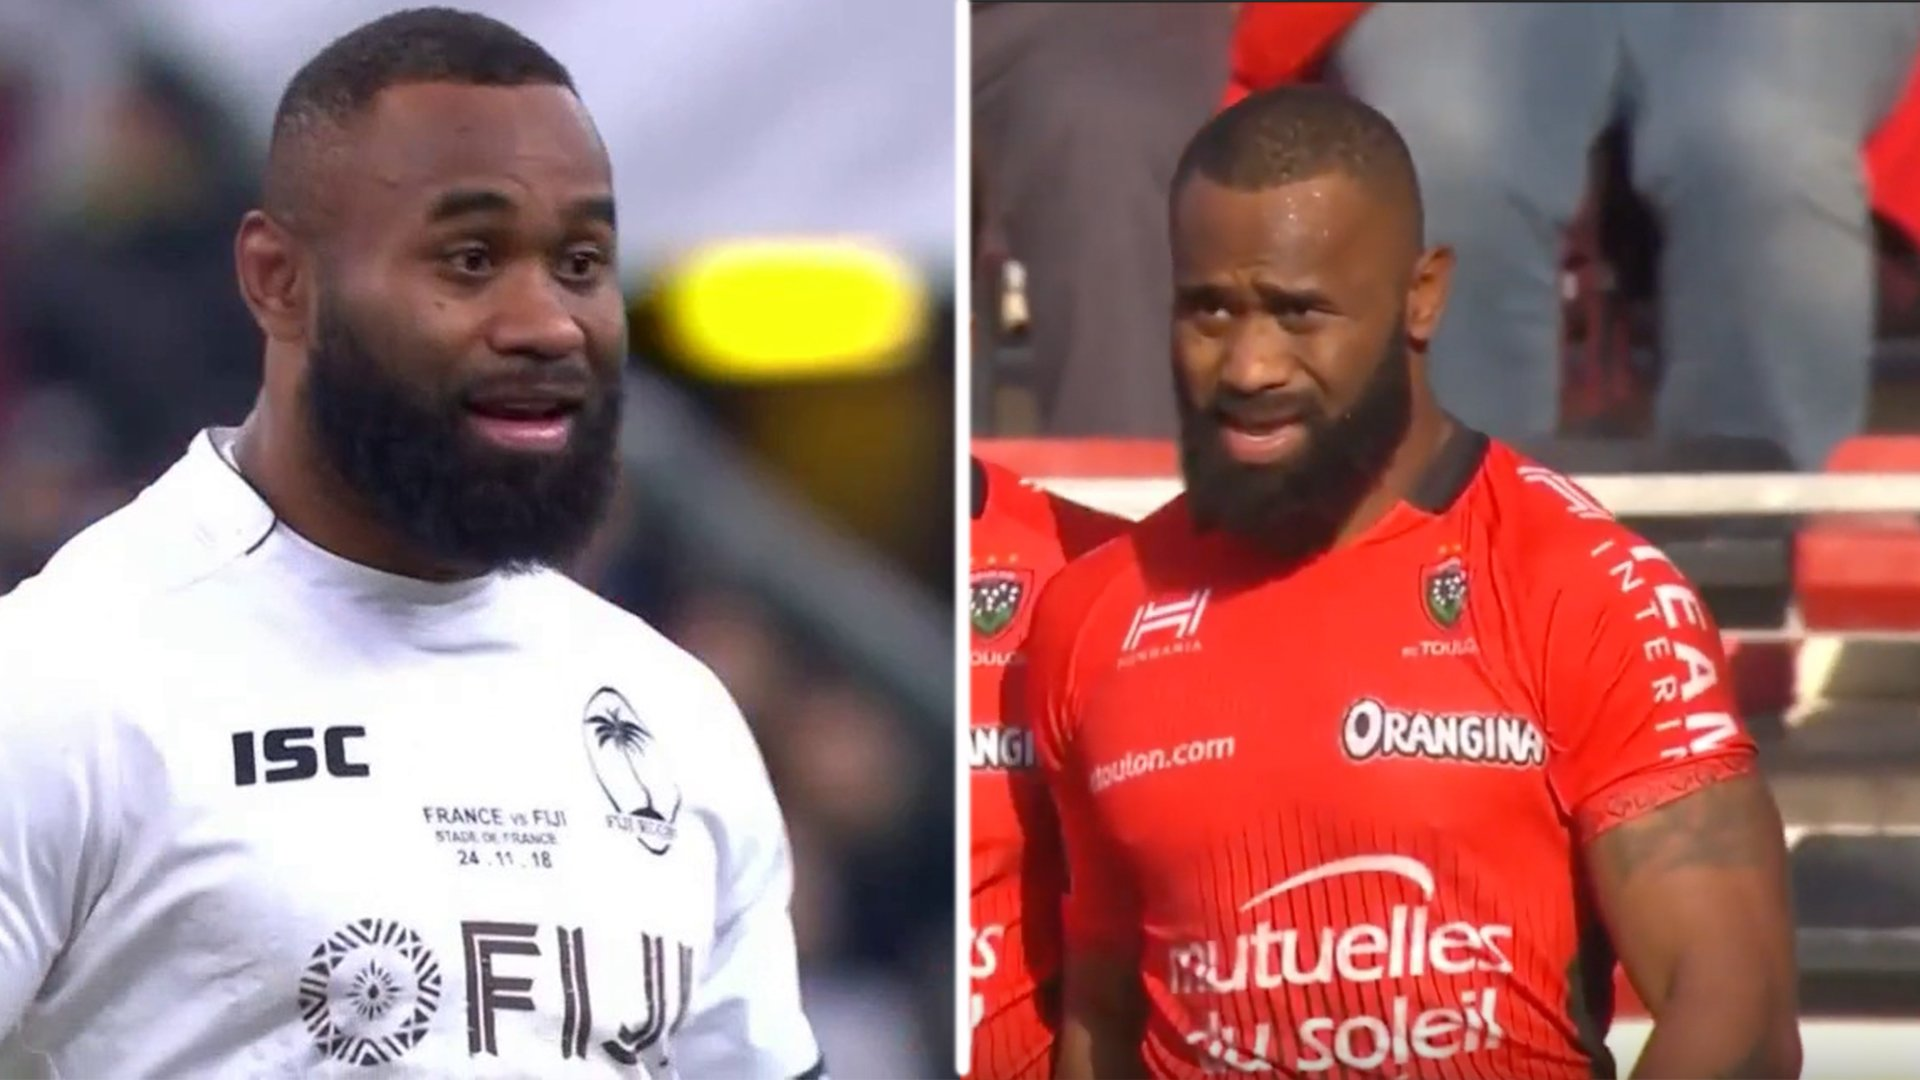 This video is proof that Bristol Bears have pulled off the signing of the century with Semi Radradra